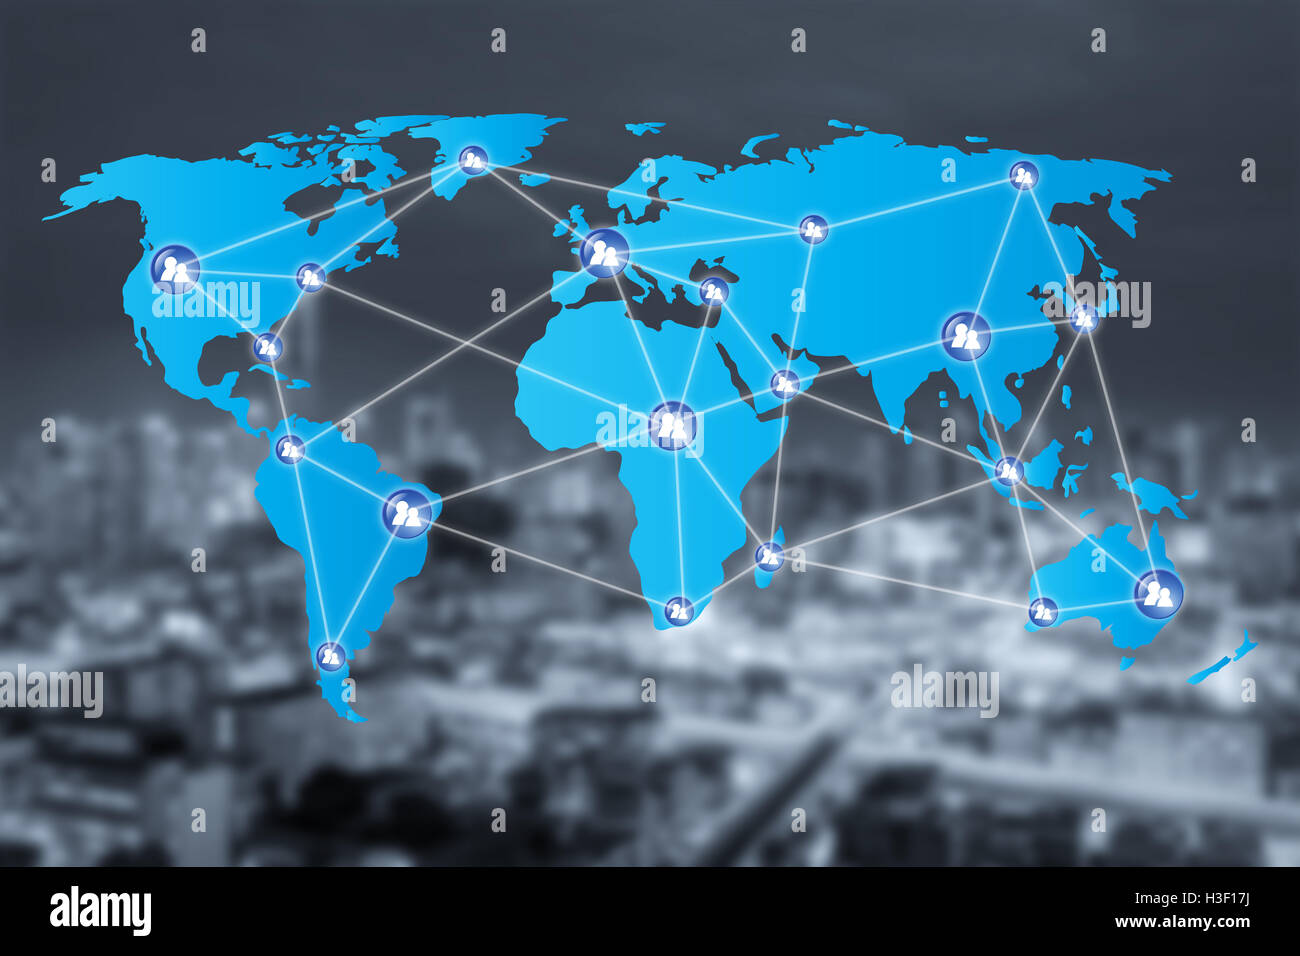 People network connection icons with World map connection and blur city. Network work connections concept - Stock Image